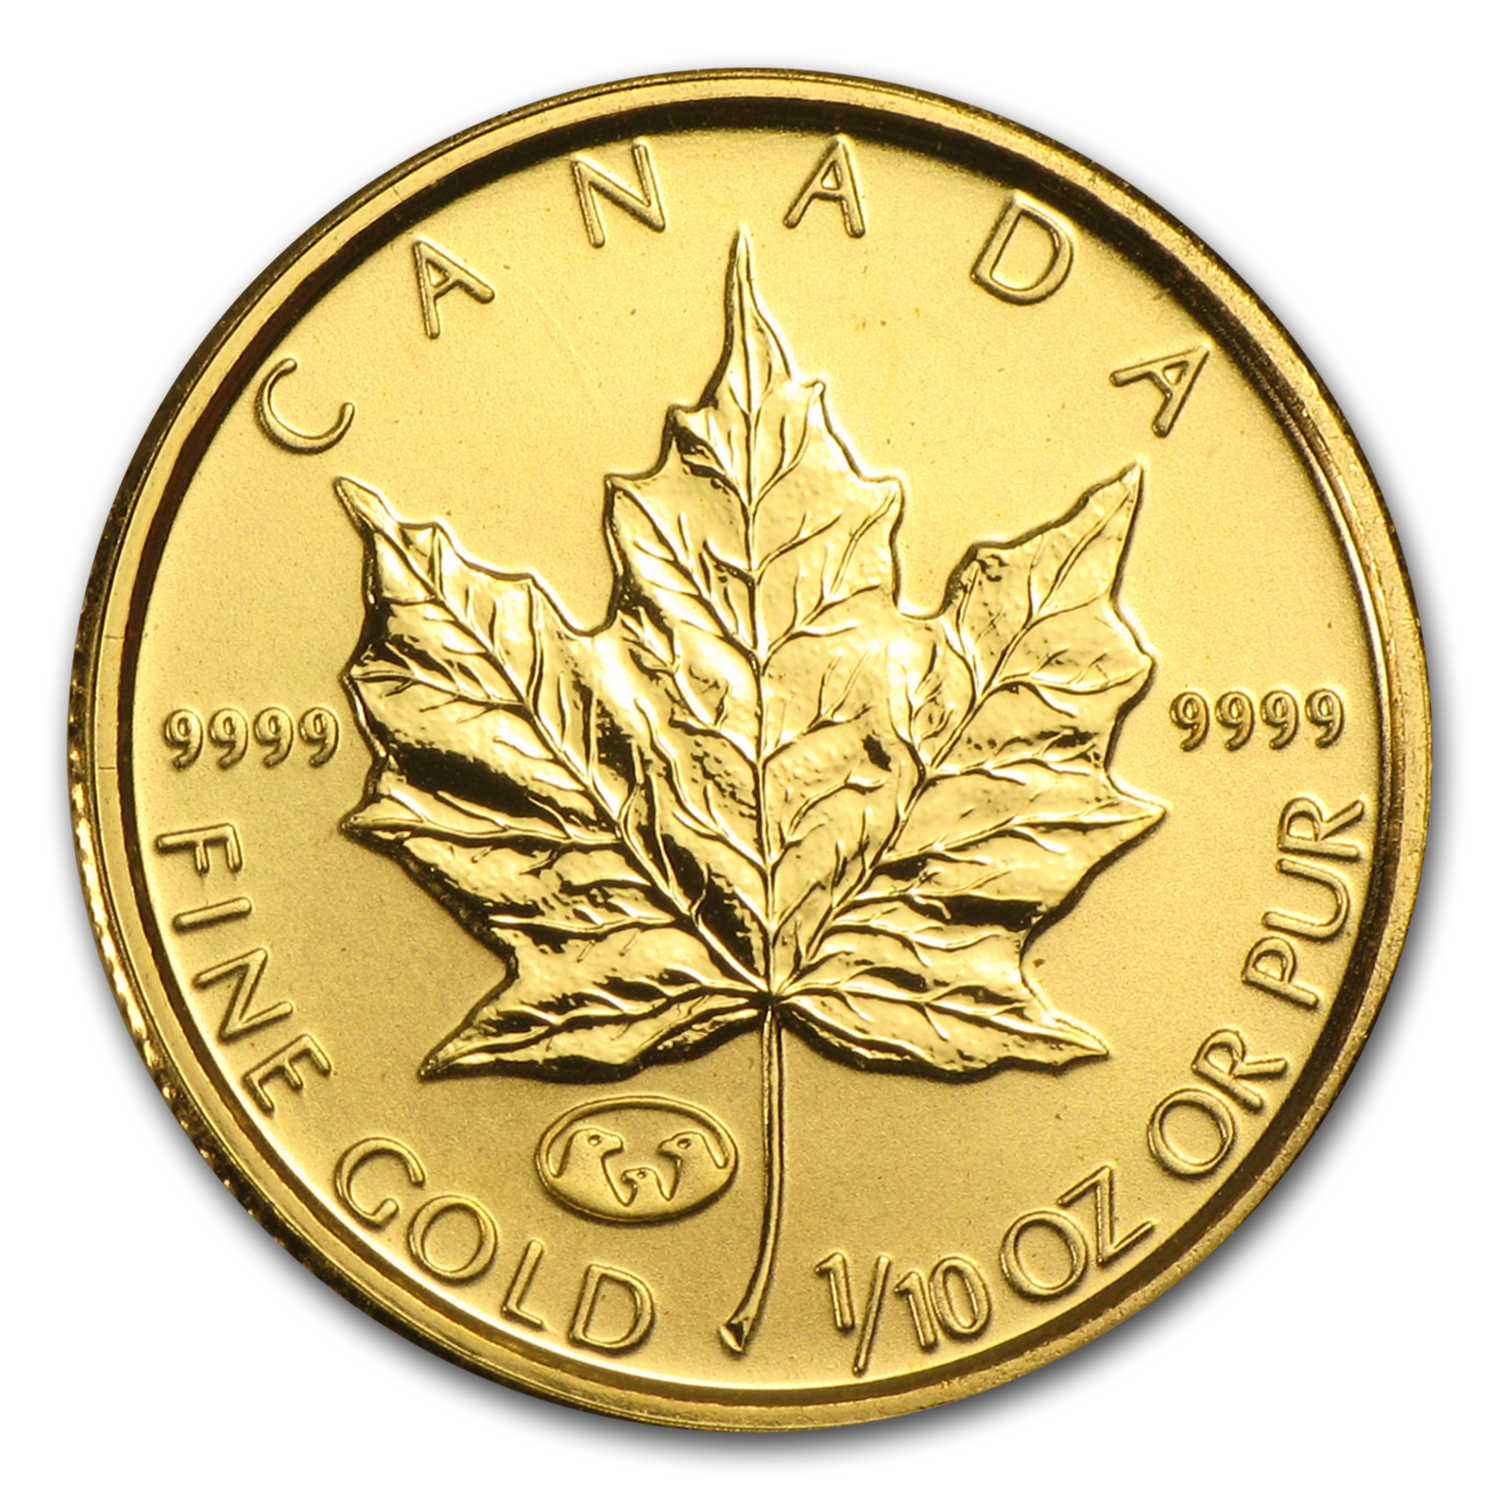 1998 Canada 1/10 oz Gold Maple Leaf BU (Family of Eagles Privy)